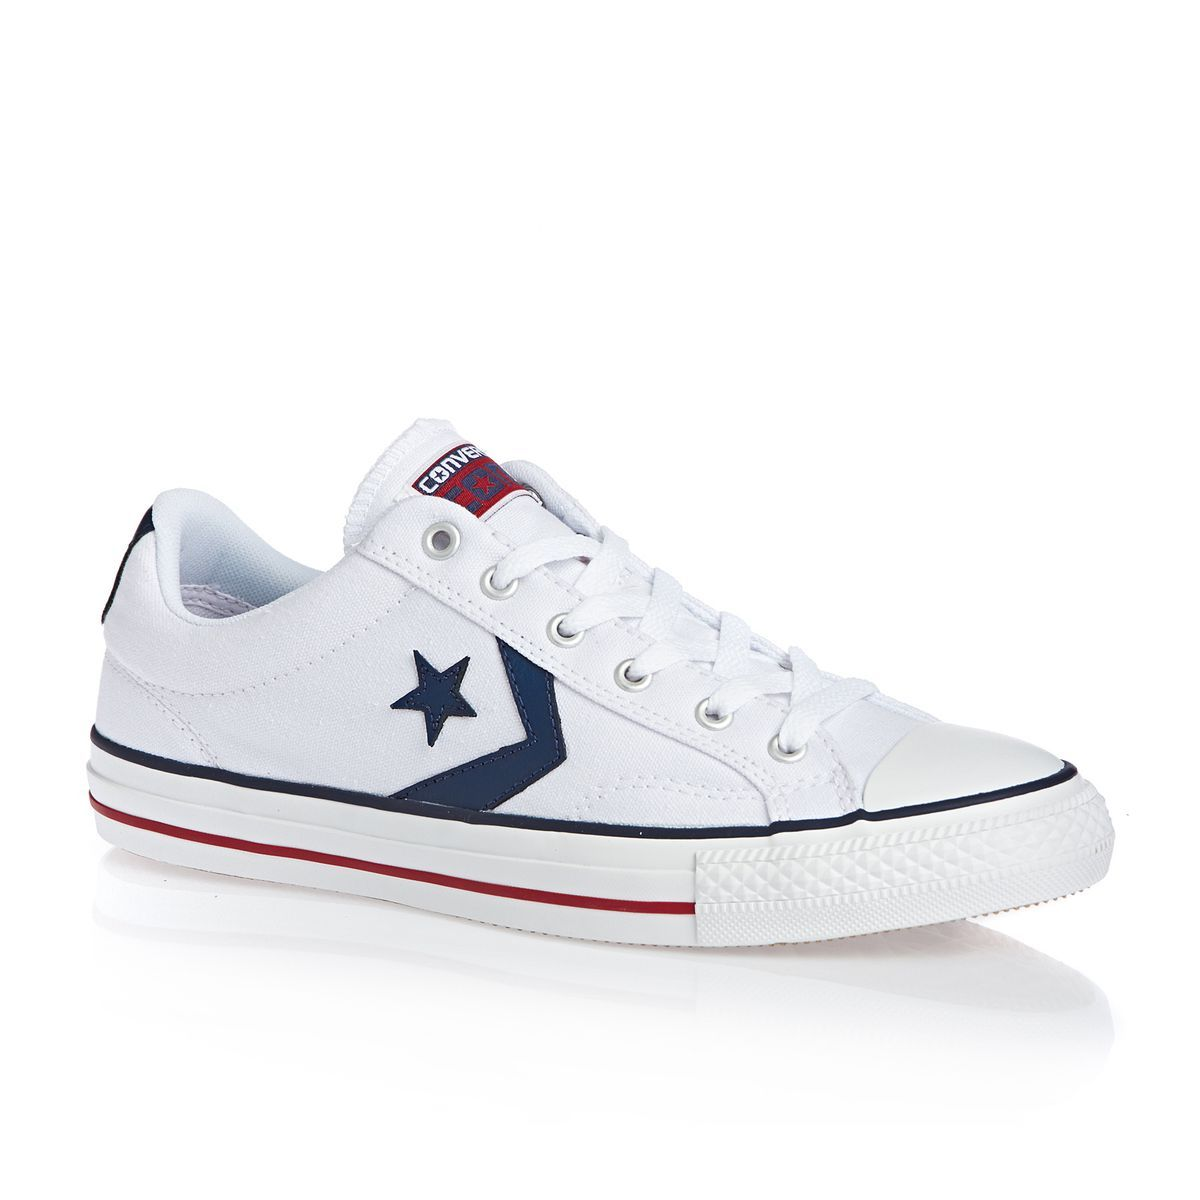 ácido Competir Civilizar  Converse Star Player Shoes - White/ White/ Navy | Converse star player,  Converse shoes, Sneakers men fashion